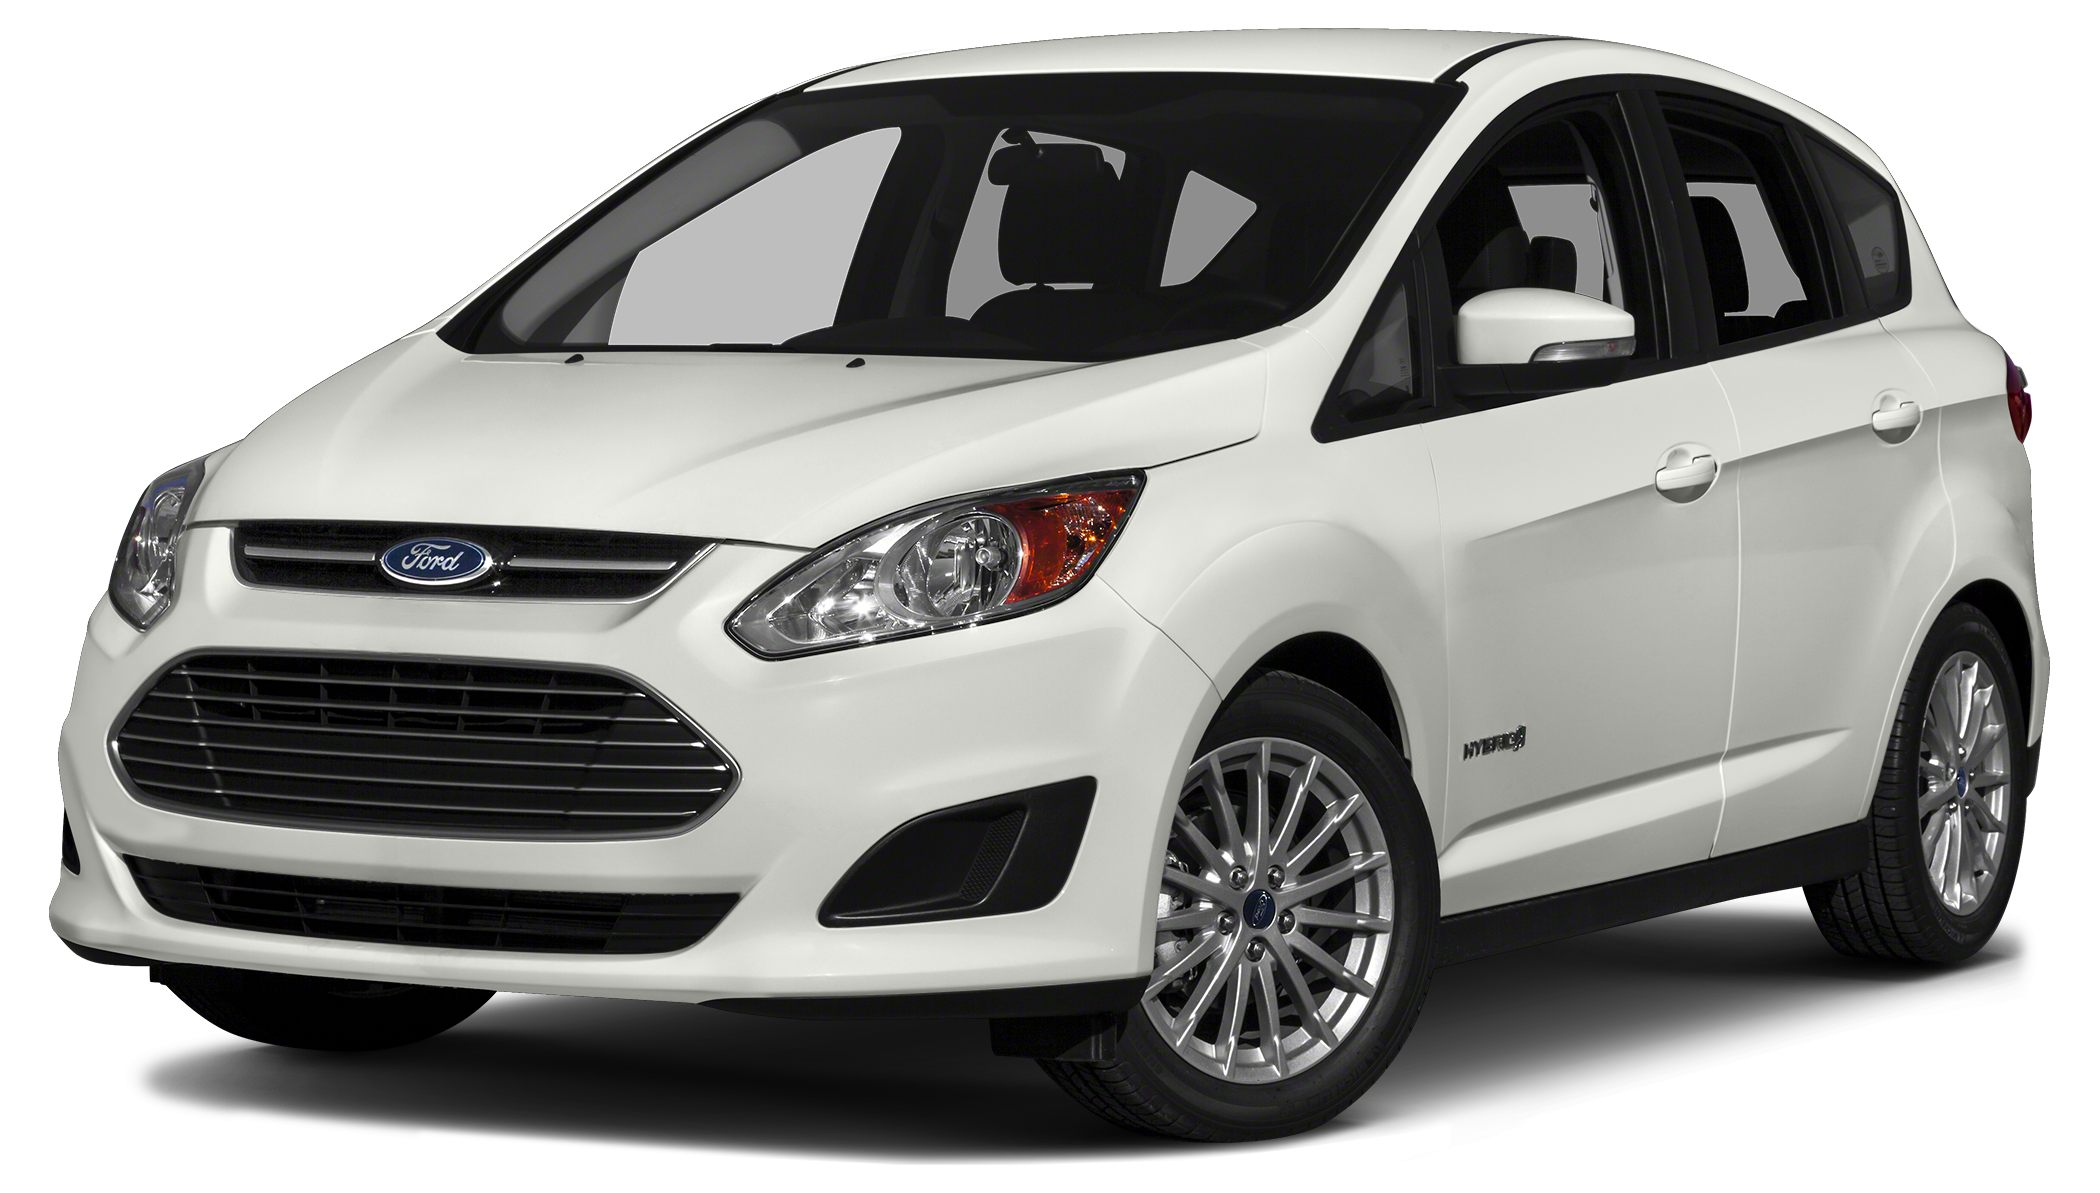 2014 Ford C-Max Hybrid SE Miles 11Color Oxford White Stock F305811 VIN 1FADP5AUXEL516468